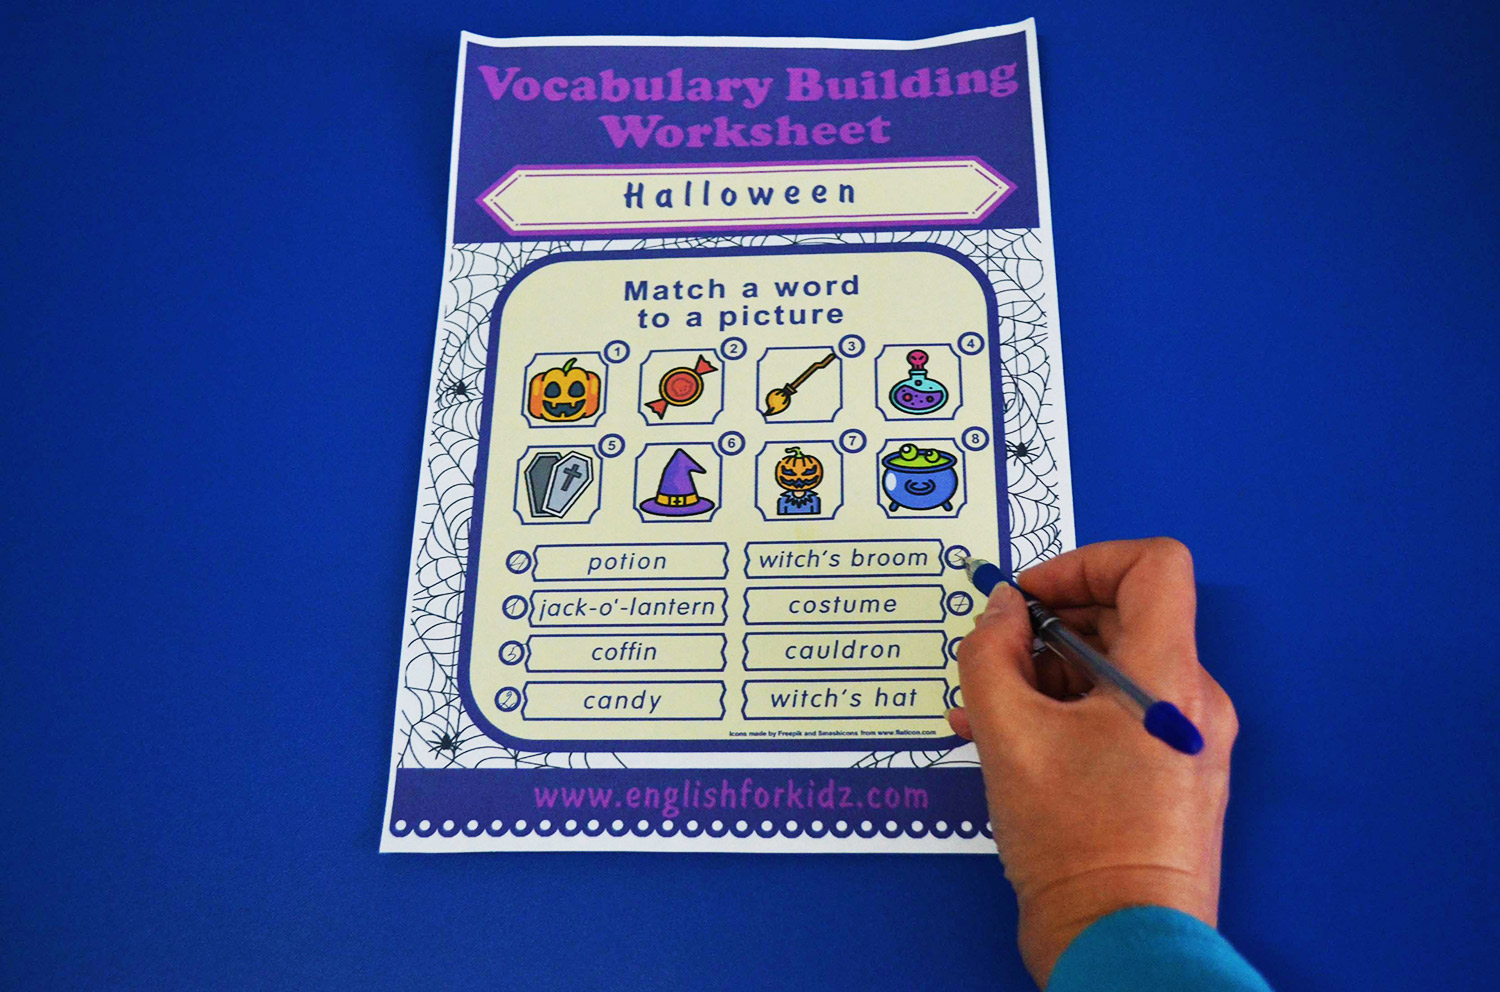 English For Kids Step By Step Halloween Worksheets Word